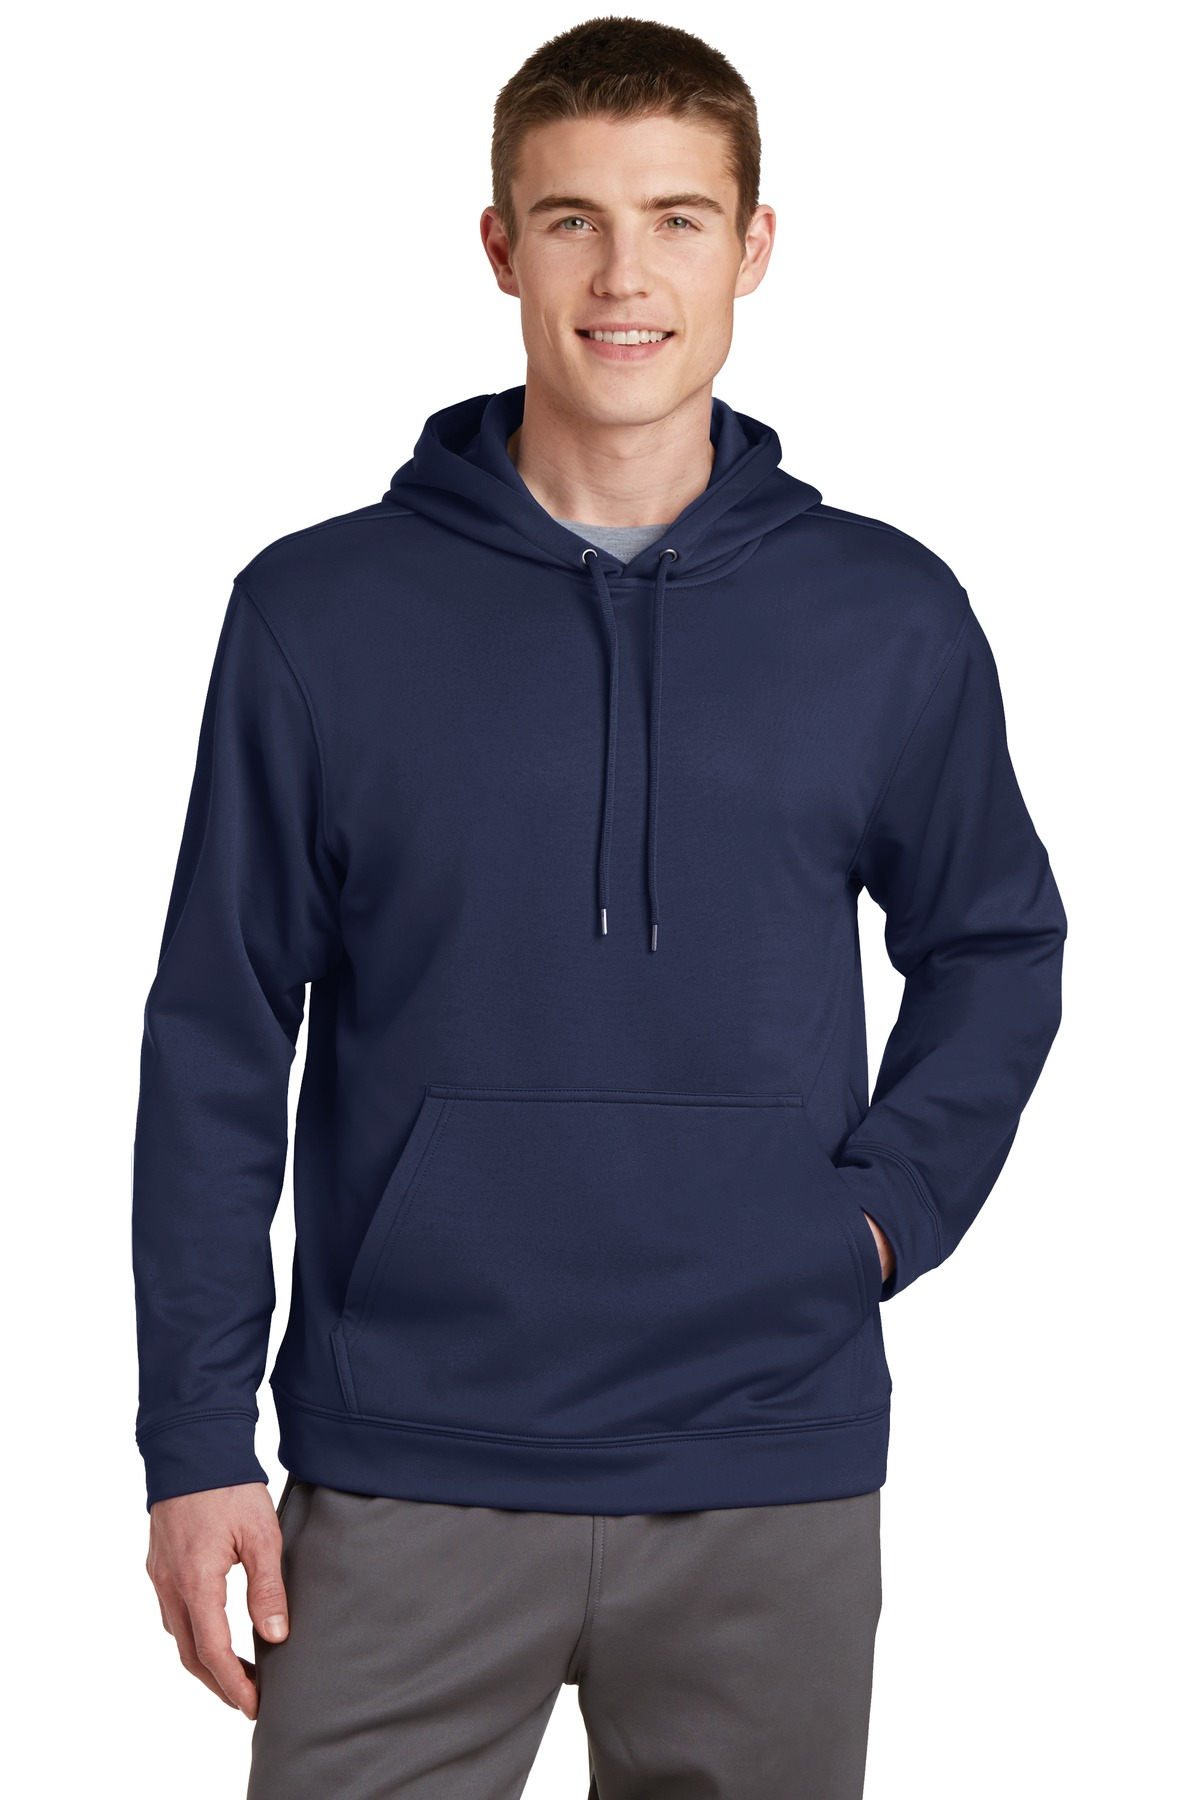 Sport-Tek ®  Sport-Wick ®  Fleece Hooded Pullover.  F244 - Navy